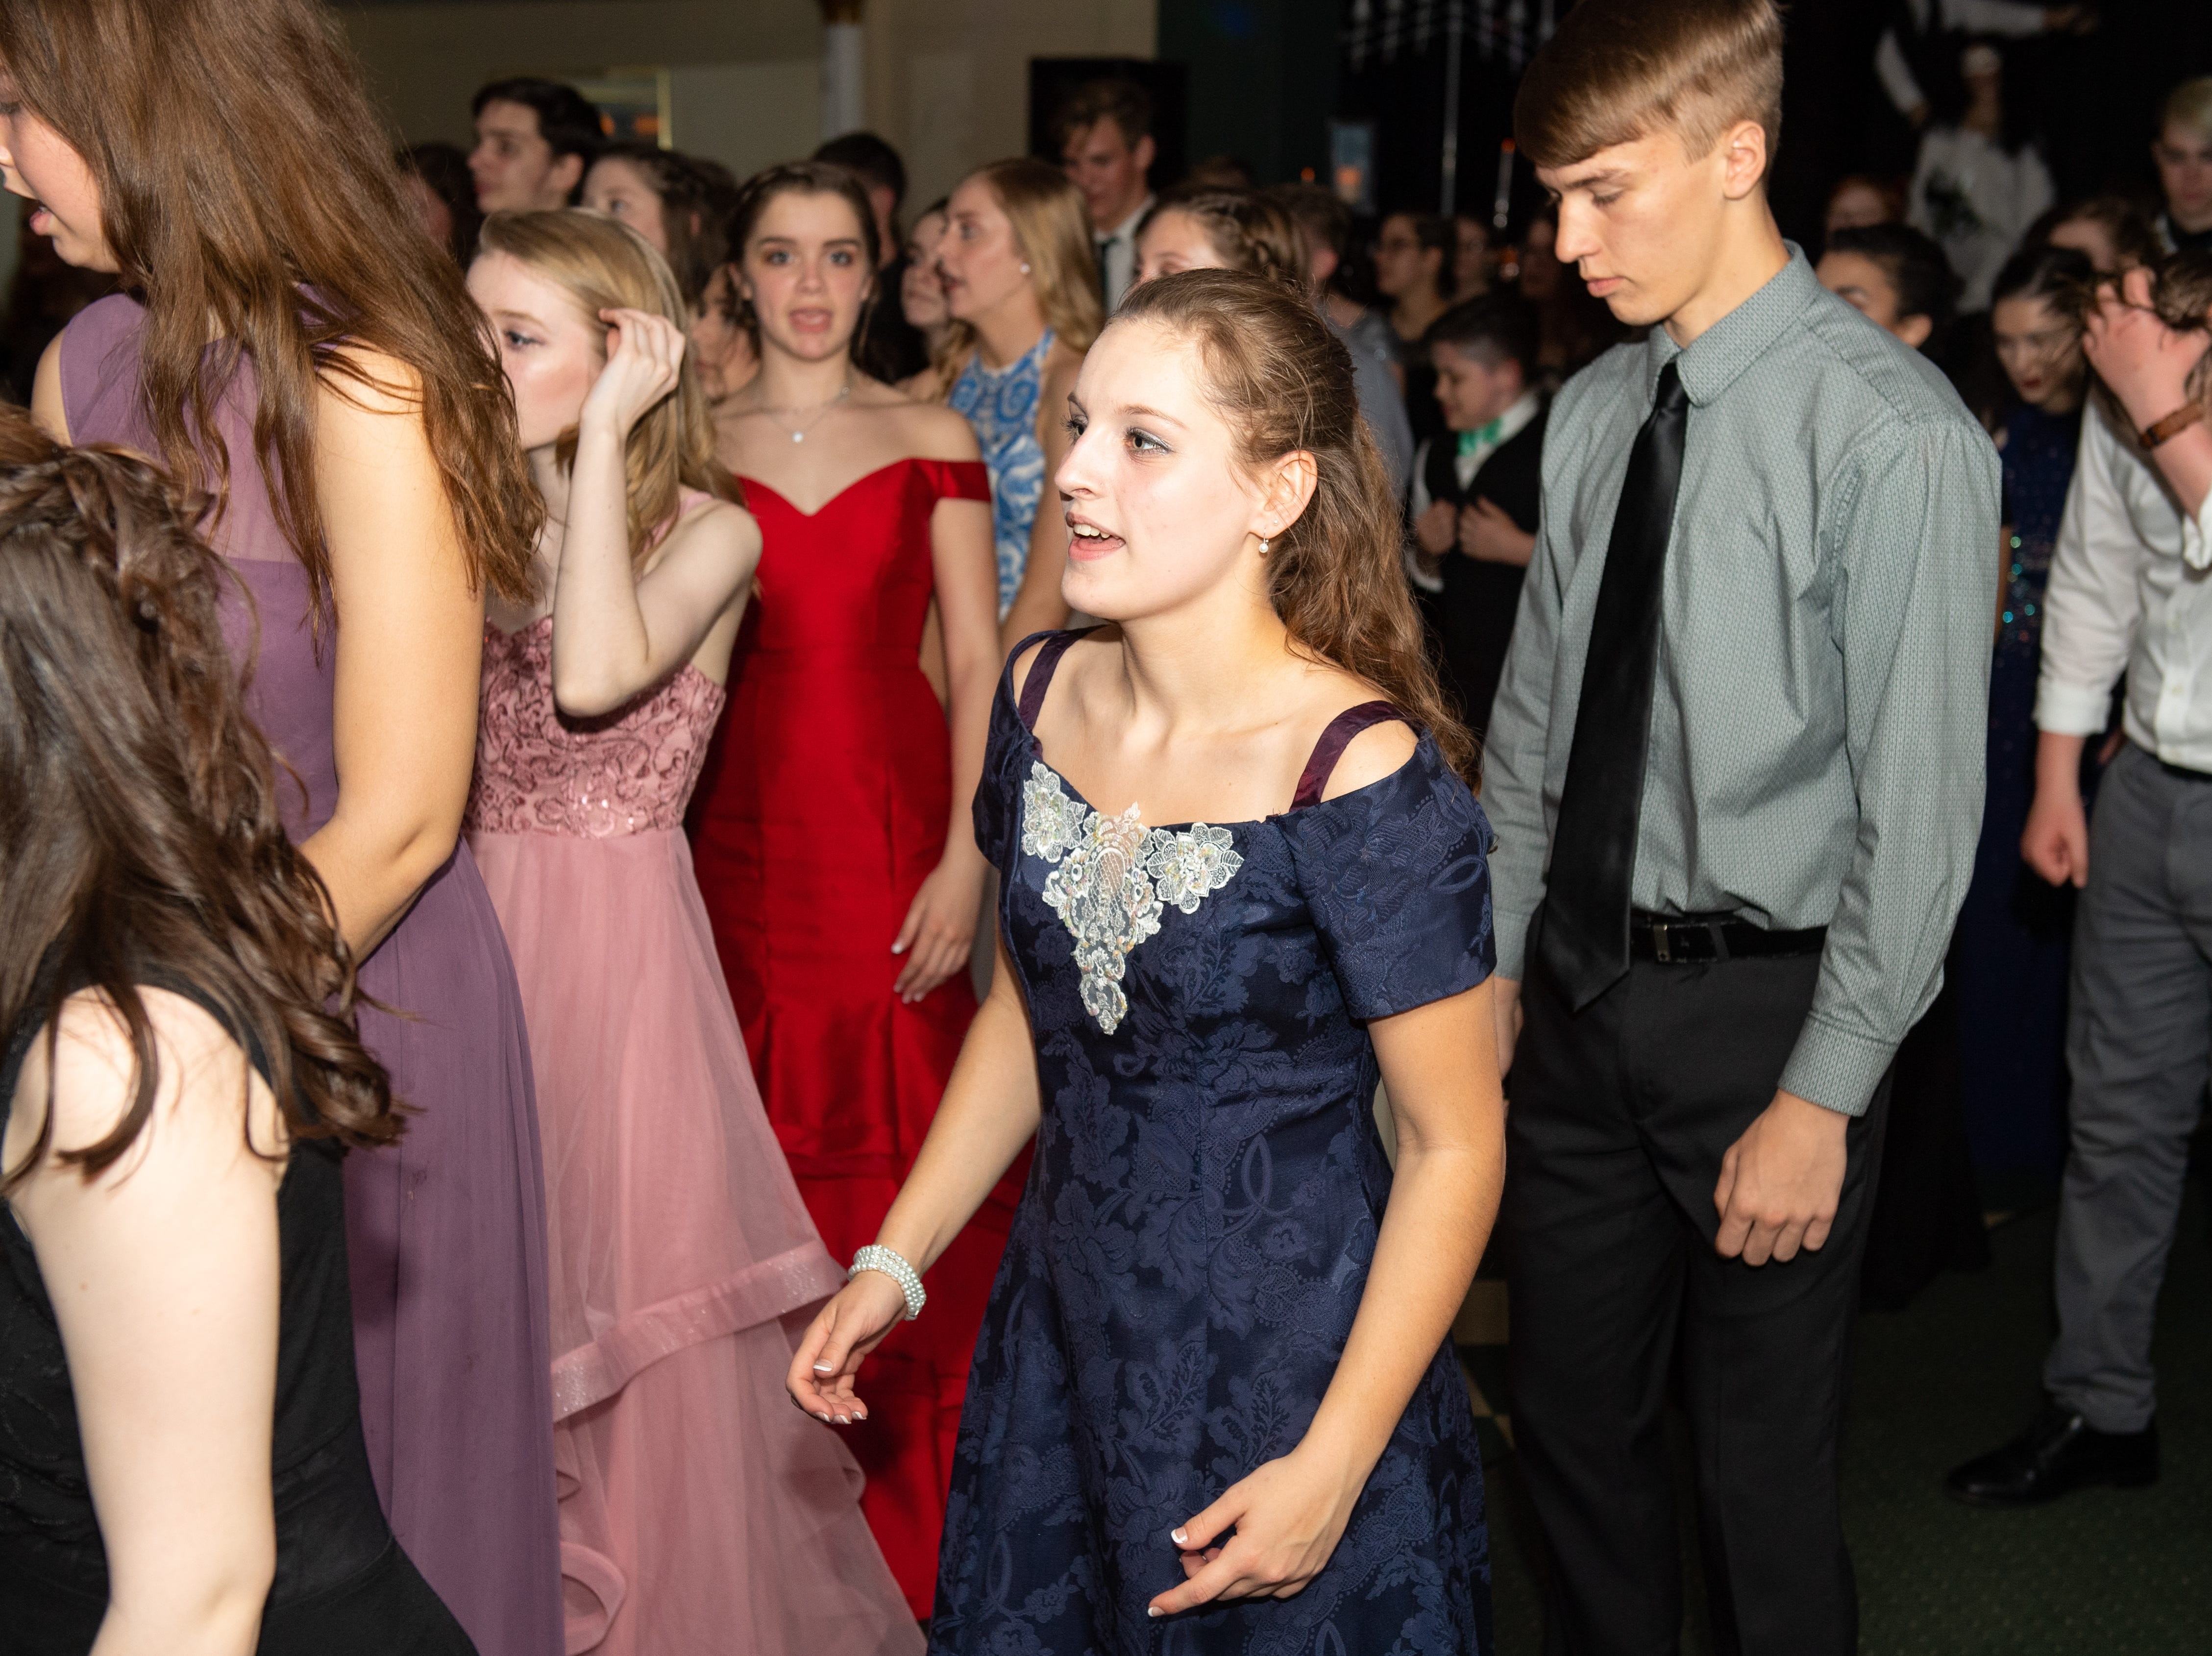 Students grab their dates and go to Wisehaven Event Center to dance the night away at the 2019 York Homeschool Association prom.